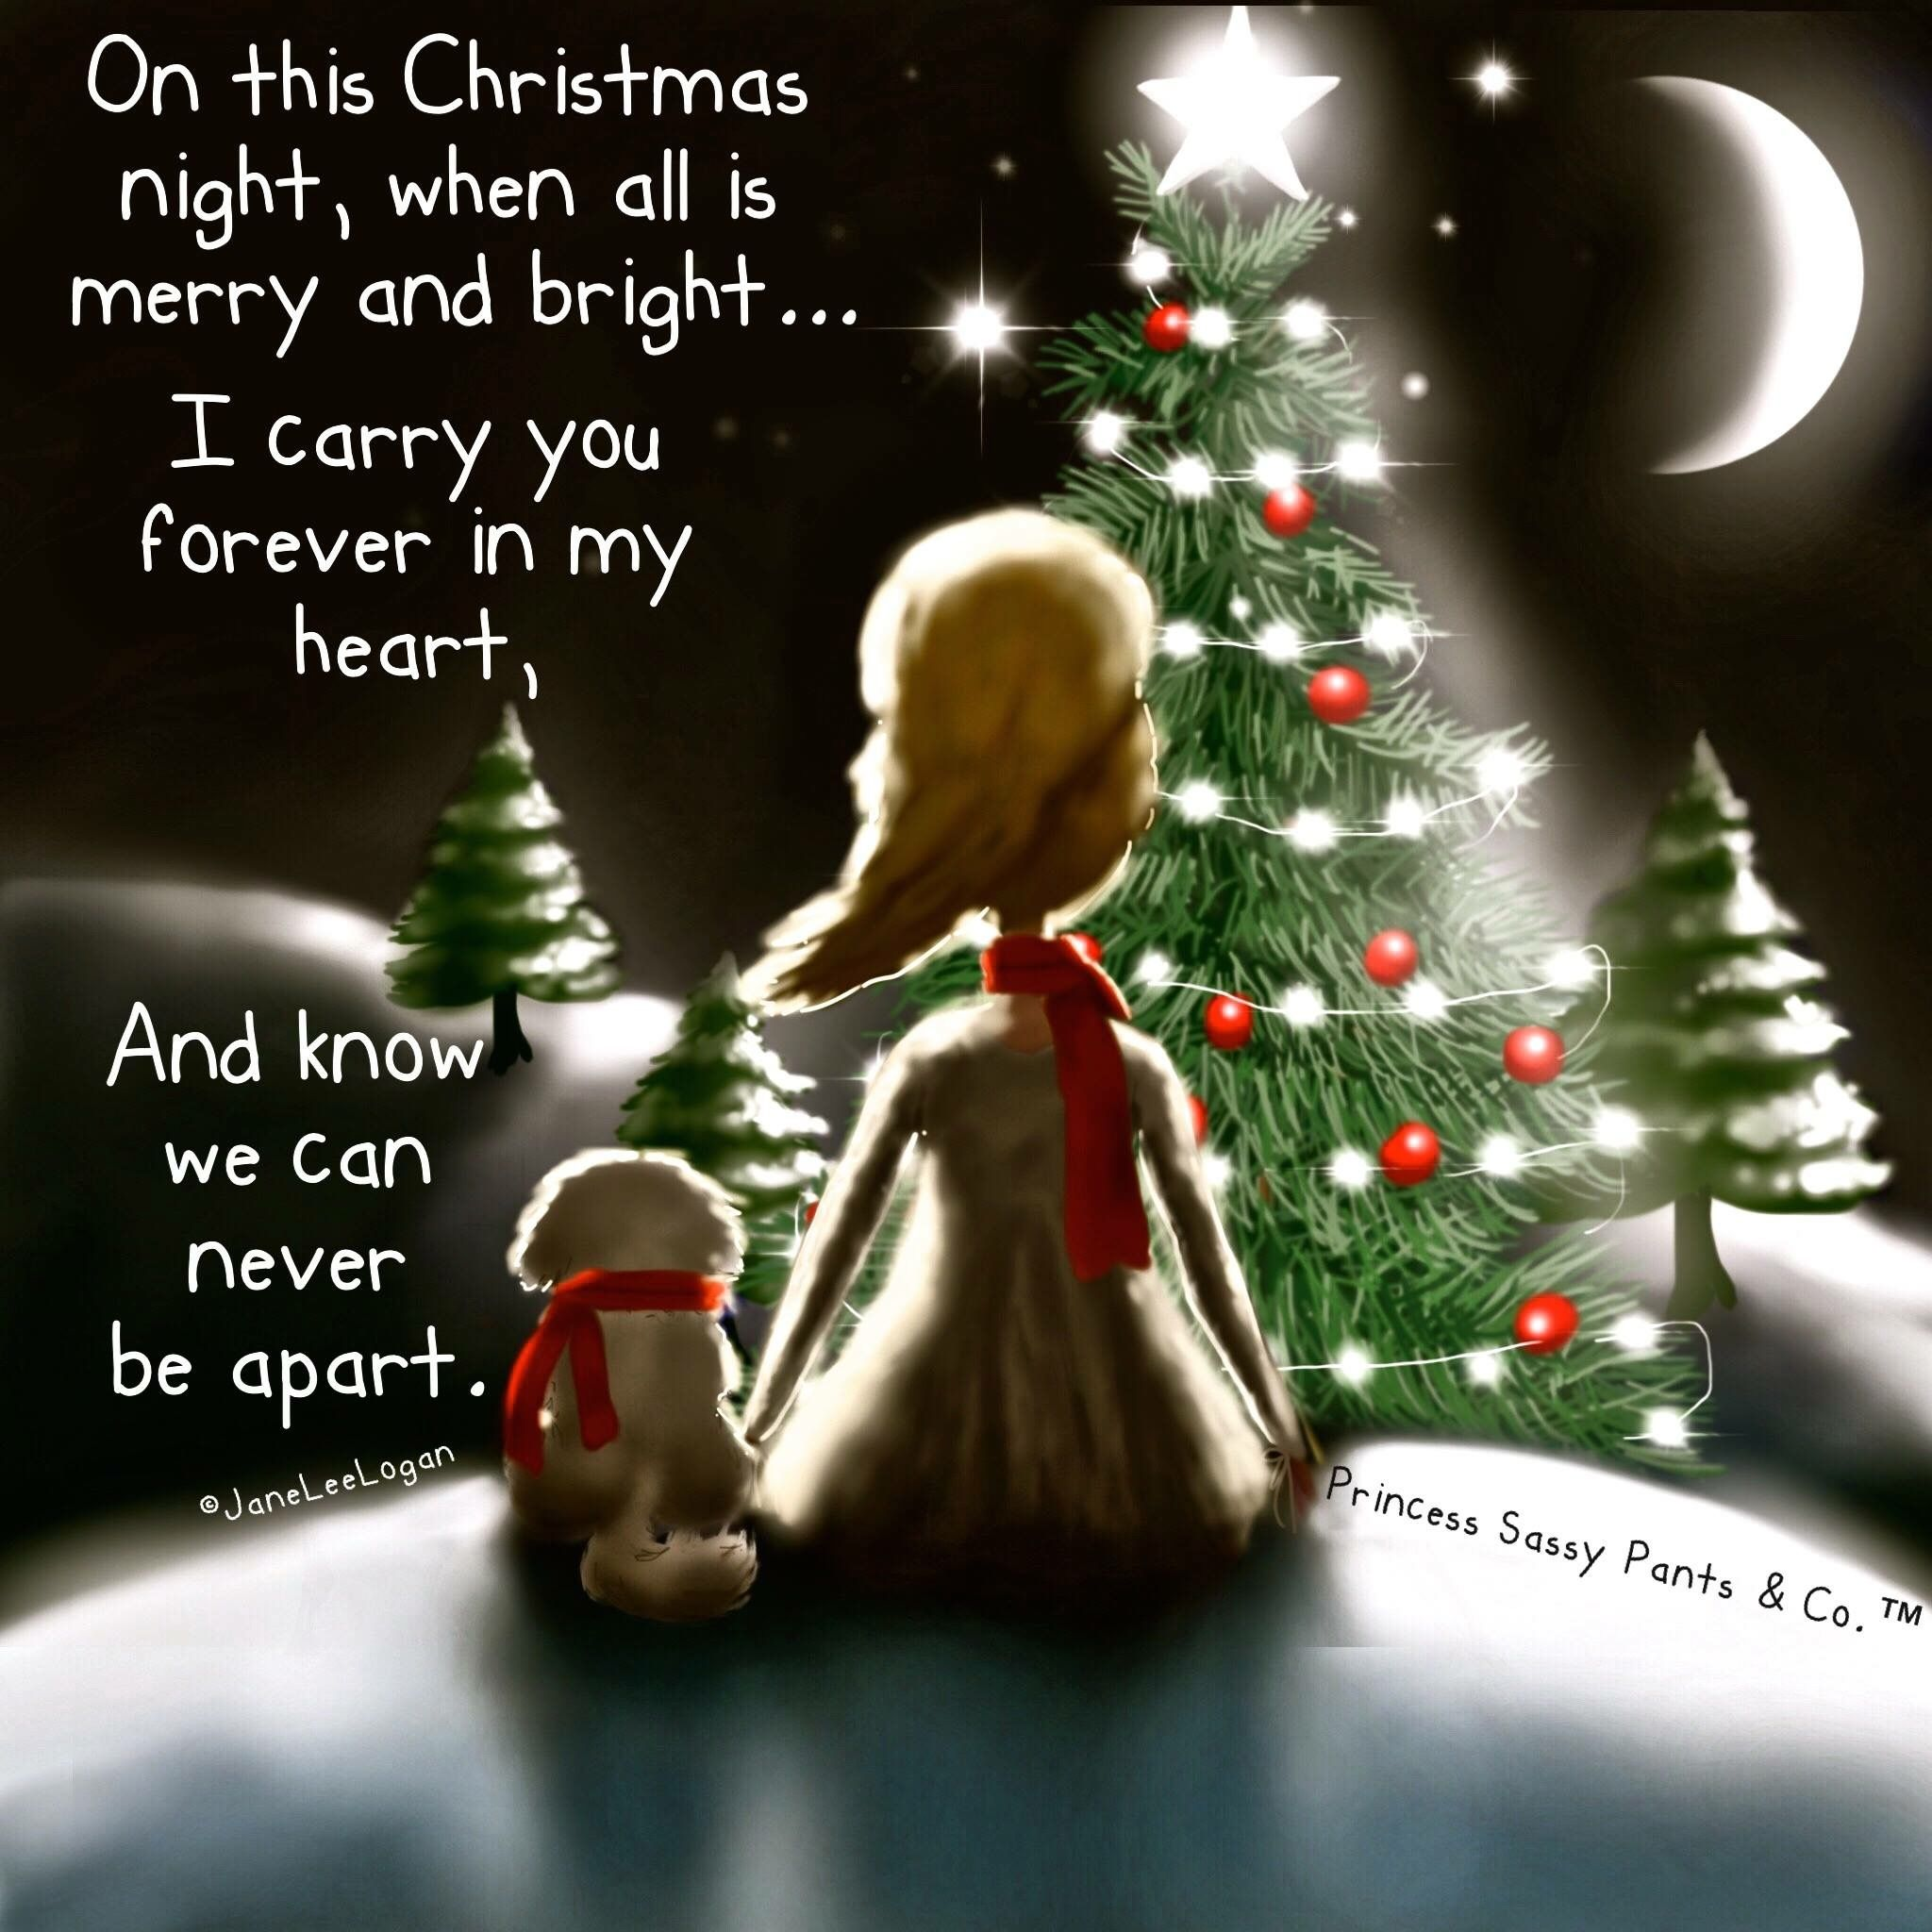 Yes You Are In My Heart But I Want You Here Beside Me It S Not The Same I M So Alone Merry Christmas In Heaven Sassy Pants Christmas In Heaven